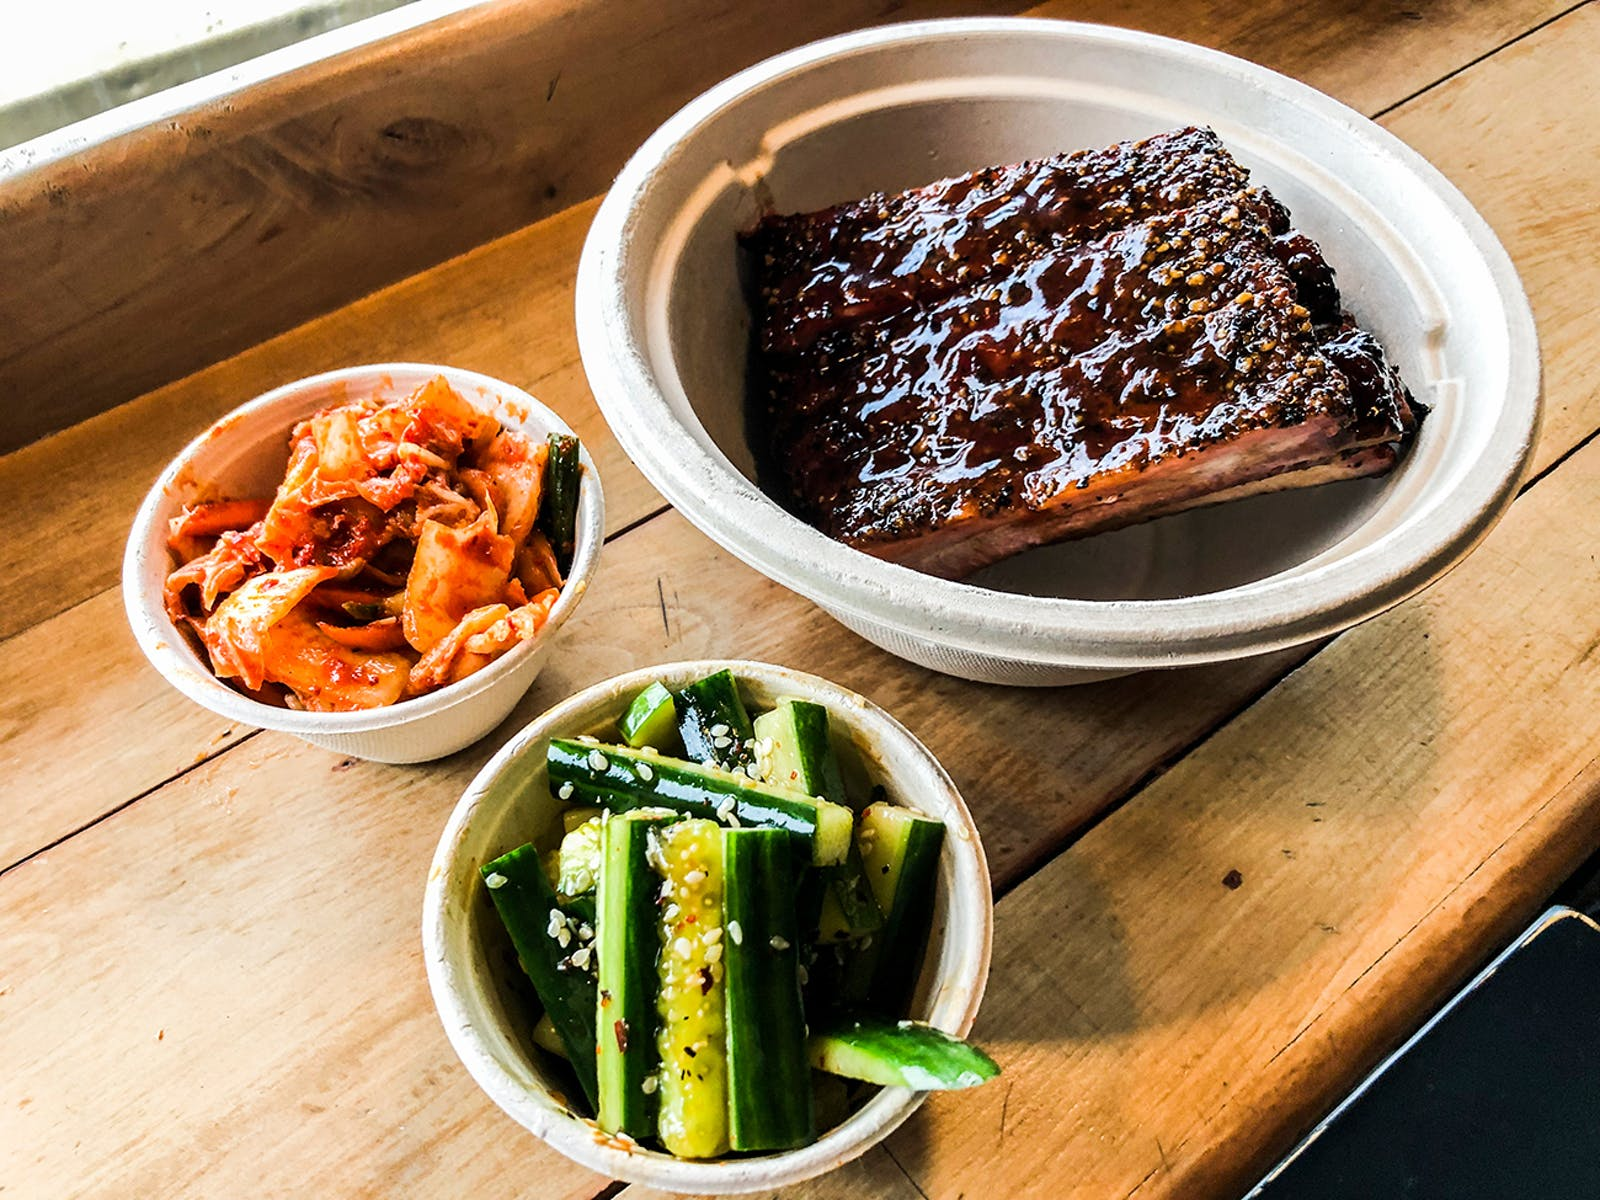 Ribs, kimchi, and pickles from Ricewood